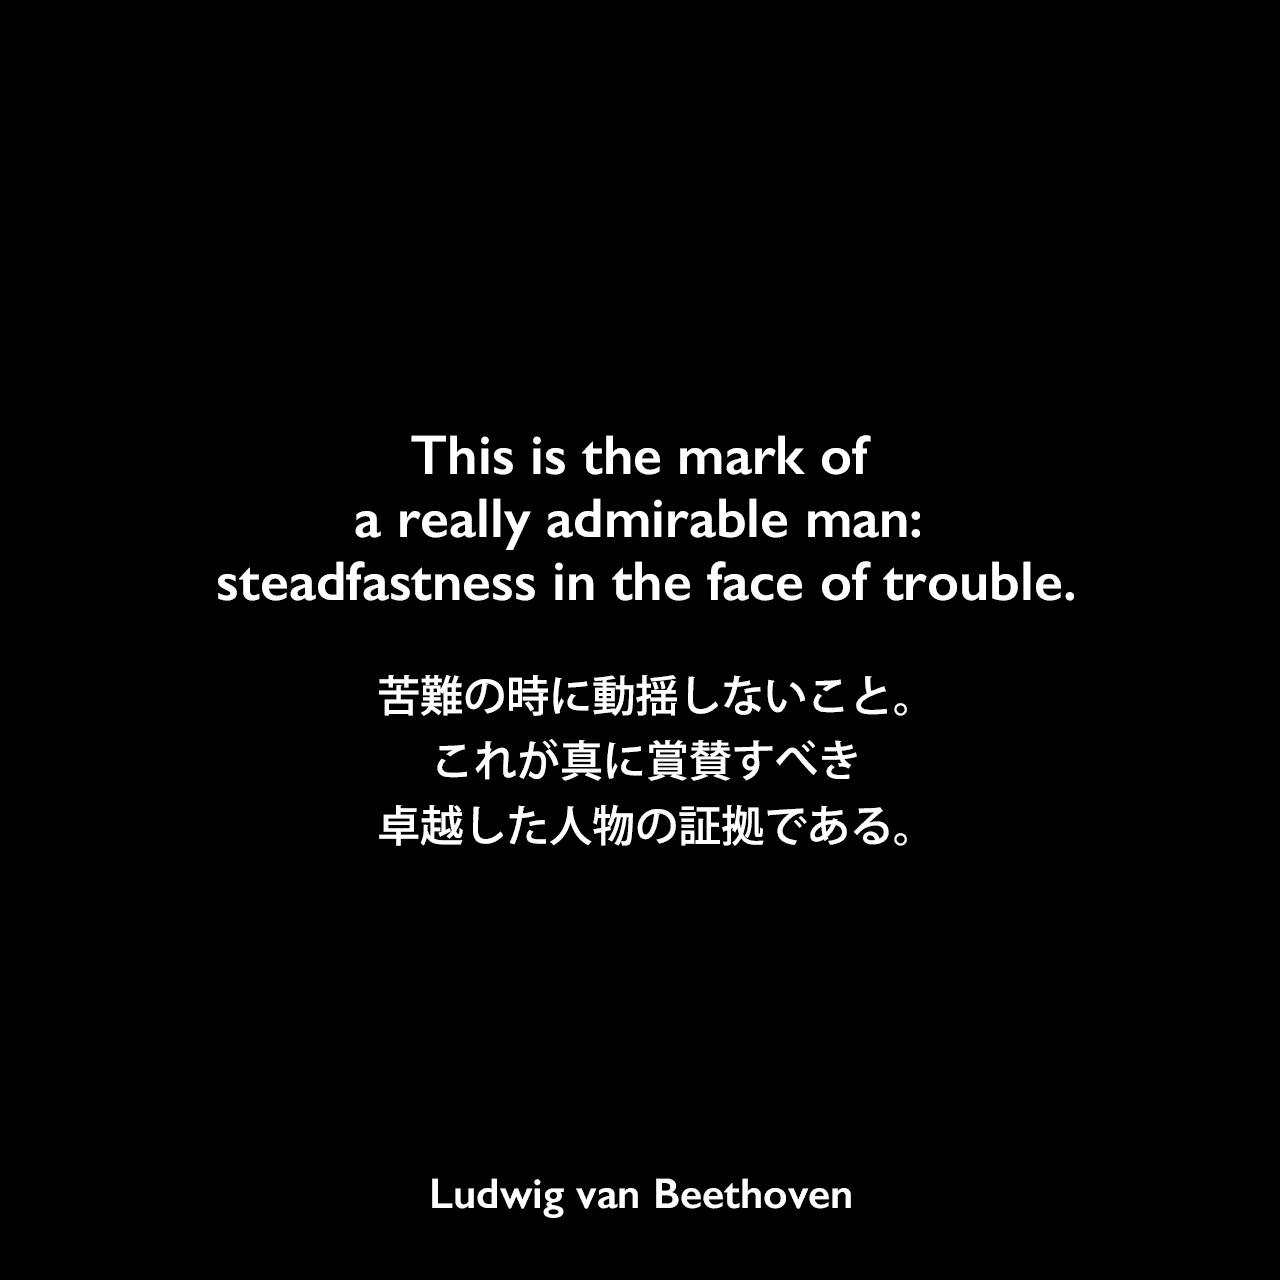 This is the mark of a really admirable man: steadfastness in the face of trouble.苦難の時に動揺しないこと。これが真に賞賛すべき卓越した人物の証拠である。Ludwig van Beethoven